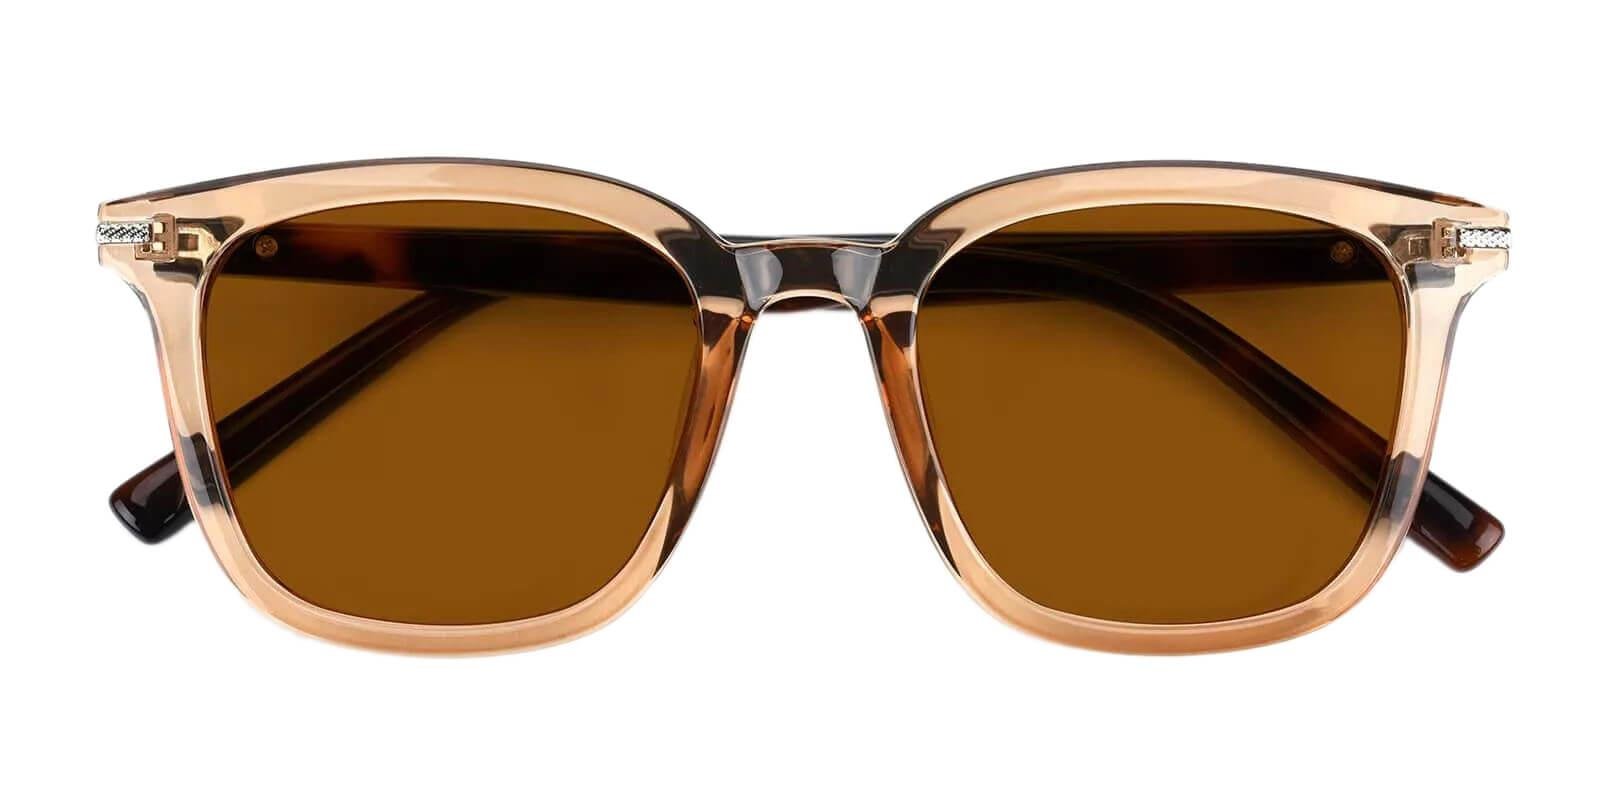 Willow Brown Acetate Fashion , Sunglasses , UniversalBridgeFit Frames from ABBE Glasses